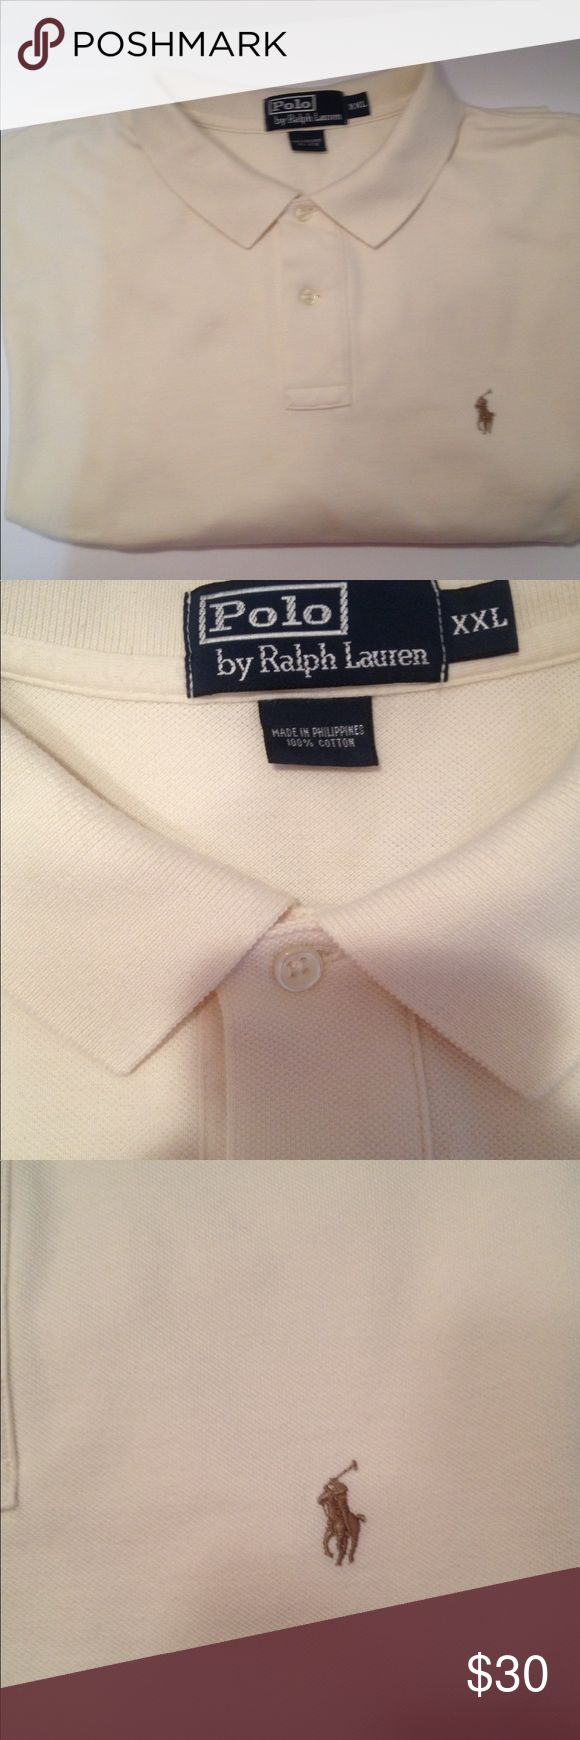 POLO by RALPH LAUREN Men's Shirt Polo by Ralph Lauren men's shirt long sleeves  used excellent condition Polo by Ralph Lauren Shirts Polos